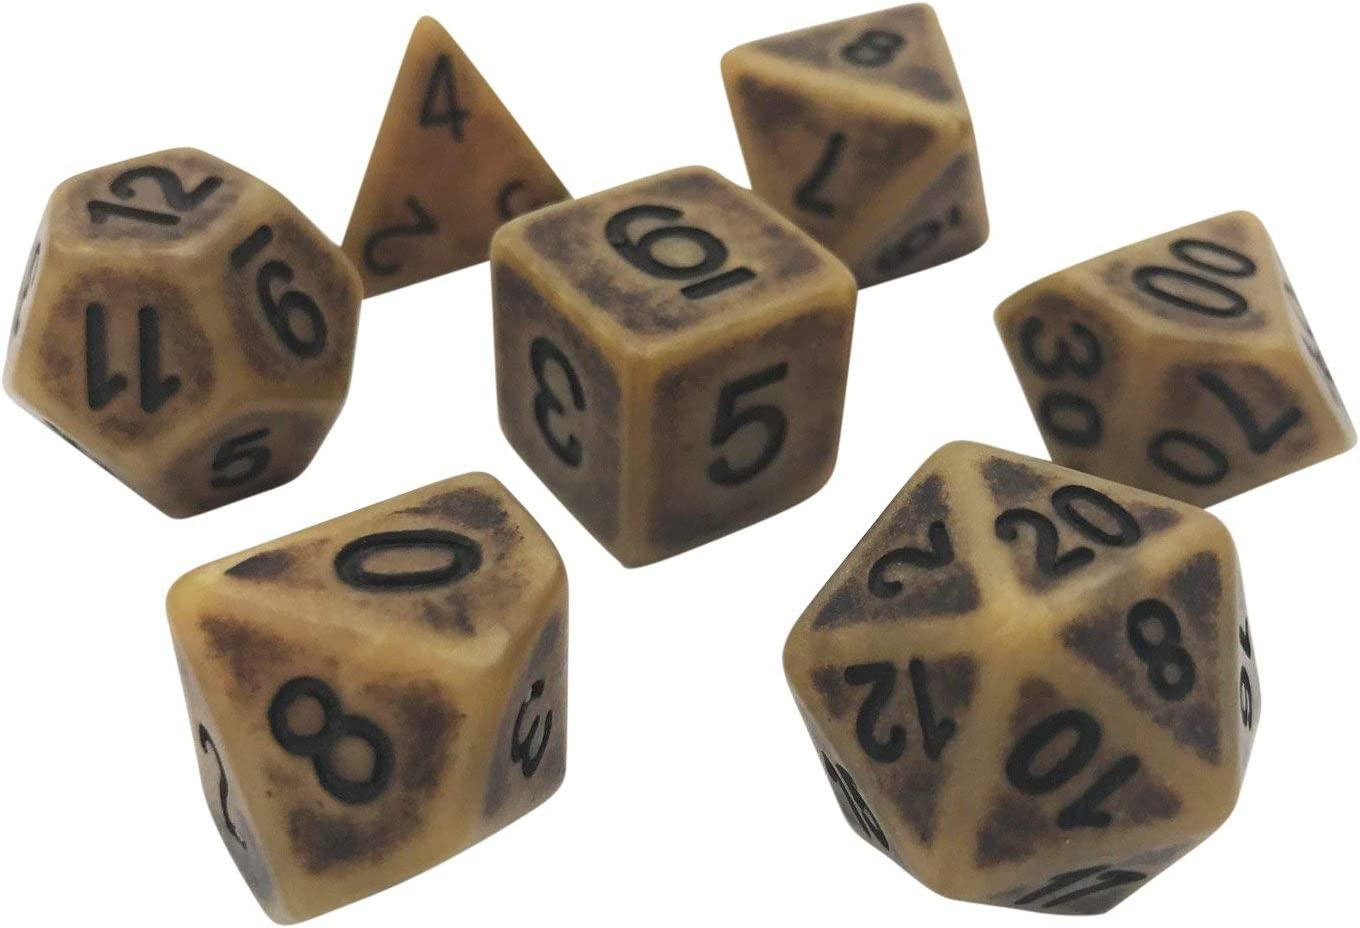 Ancient Worlds 7 Piece Polyhedral DND Dice Set by D20 Collective Dice for Table Top Dungeons and Dragons RPGs and Gaming